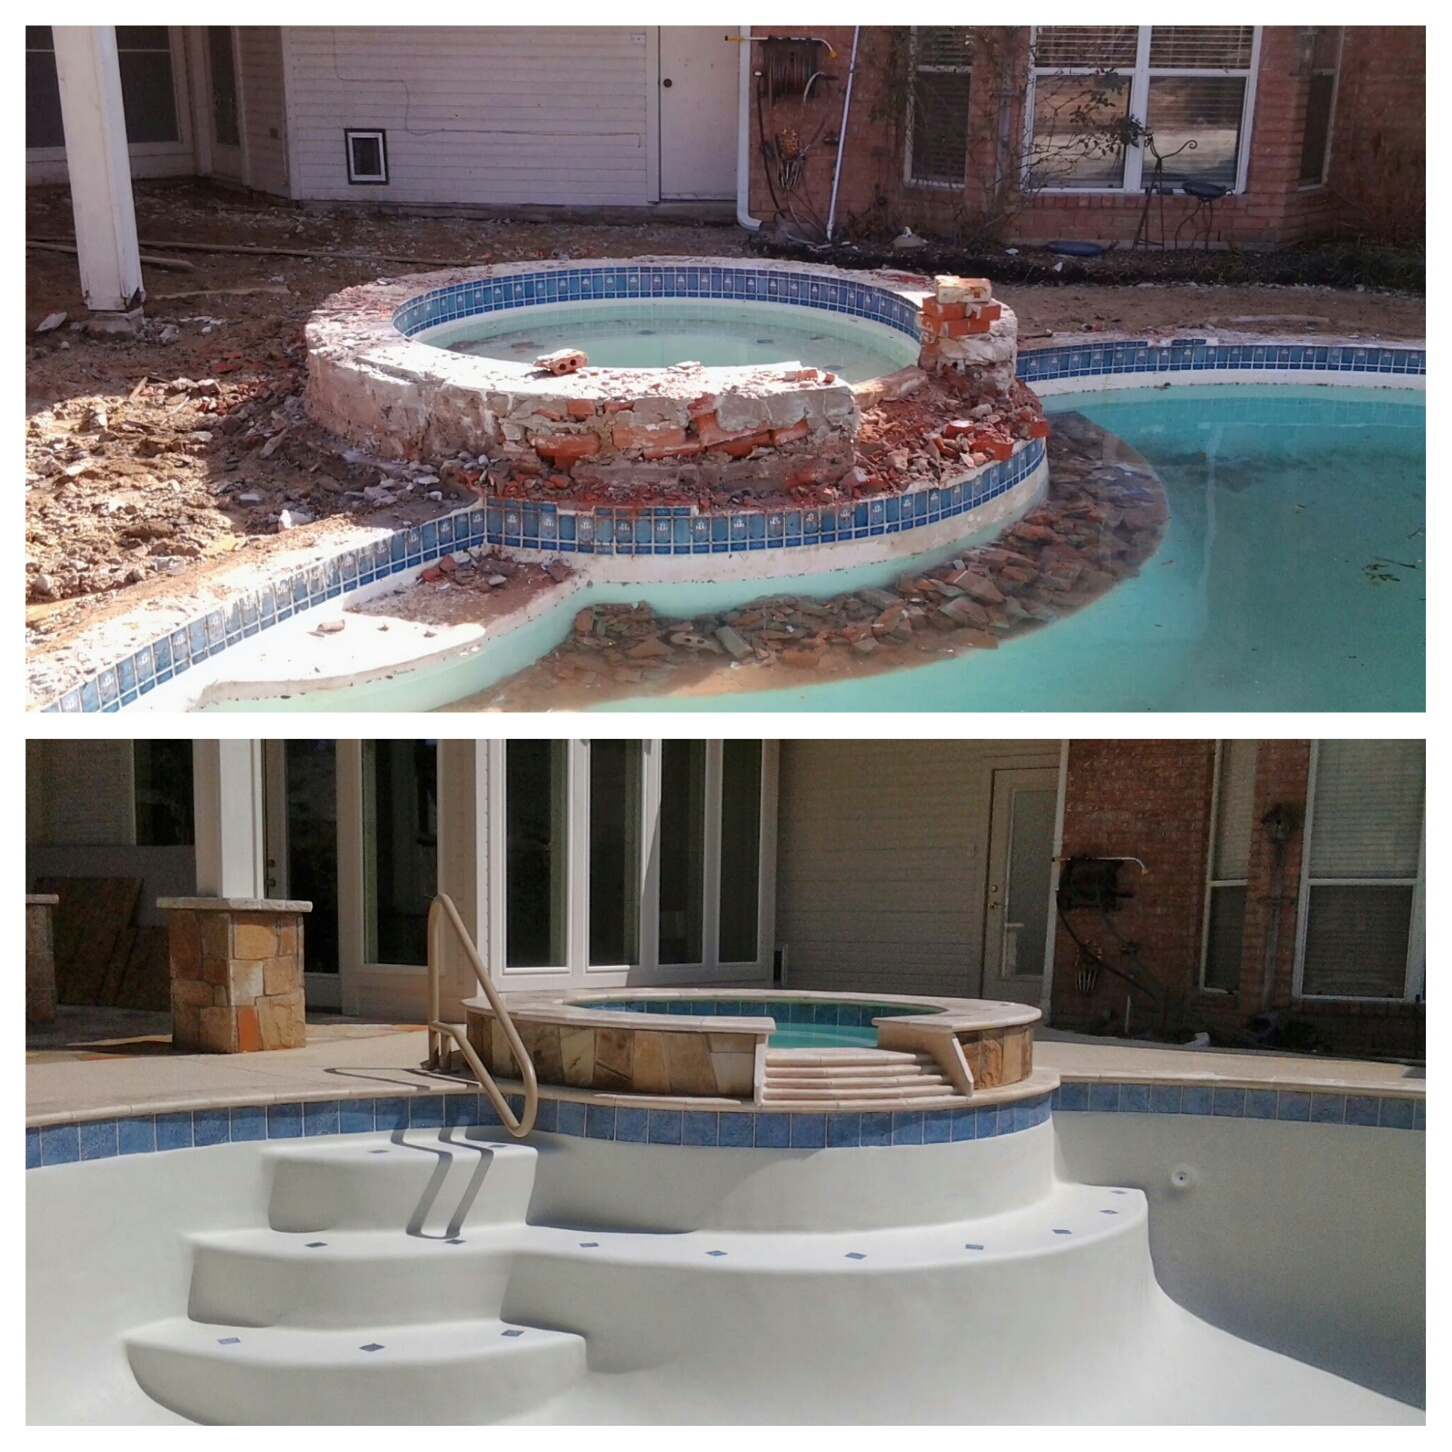 Swimming Pool Transformation in Coppell, TX!